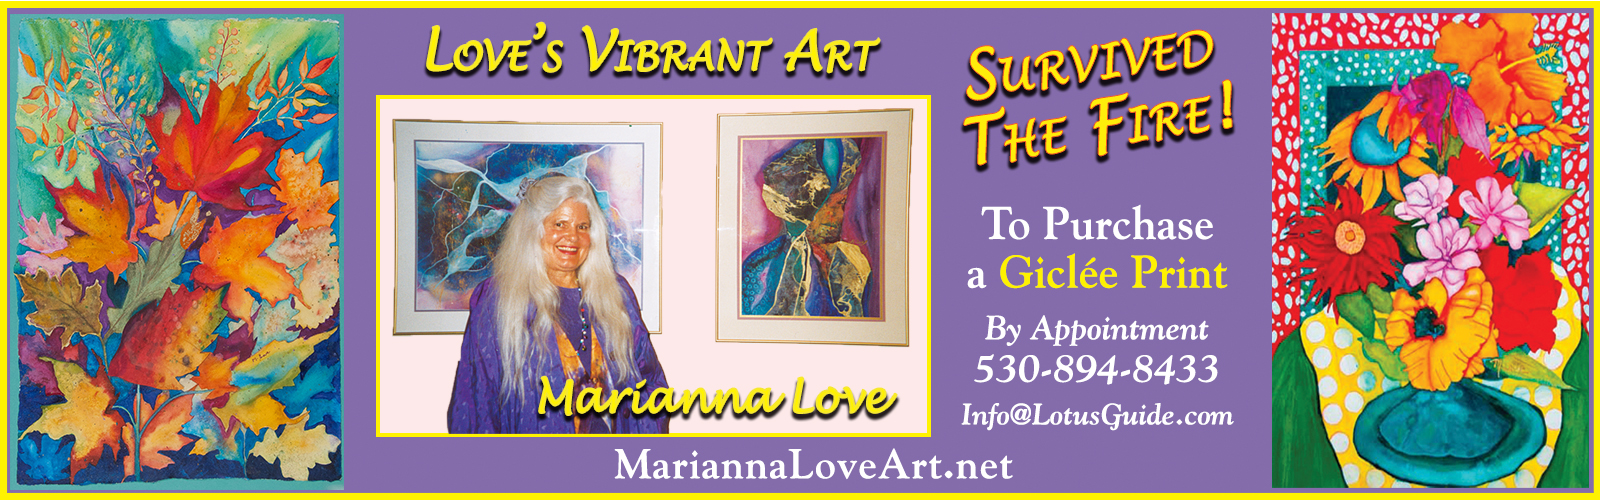 Marianna Love Art